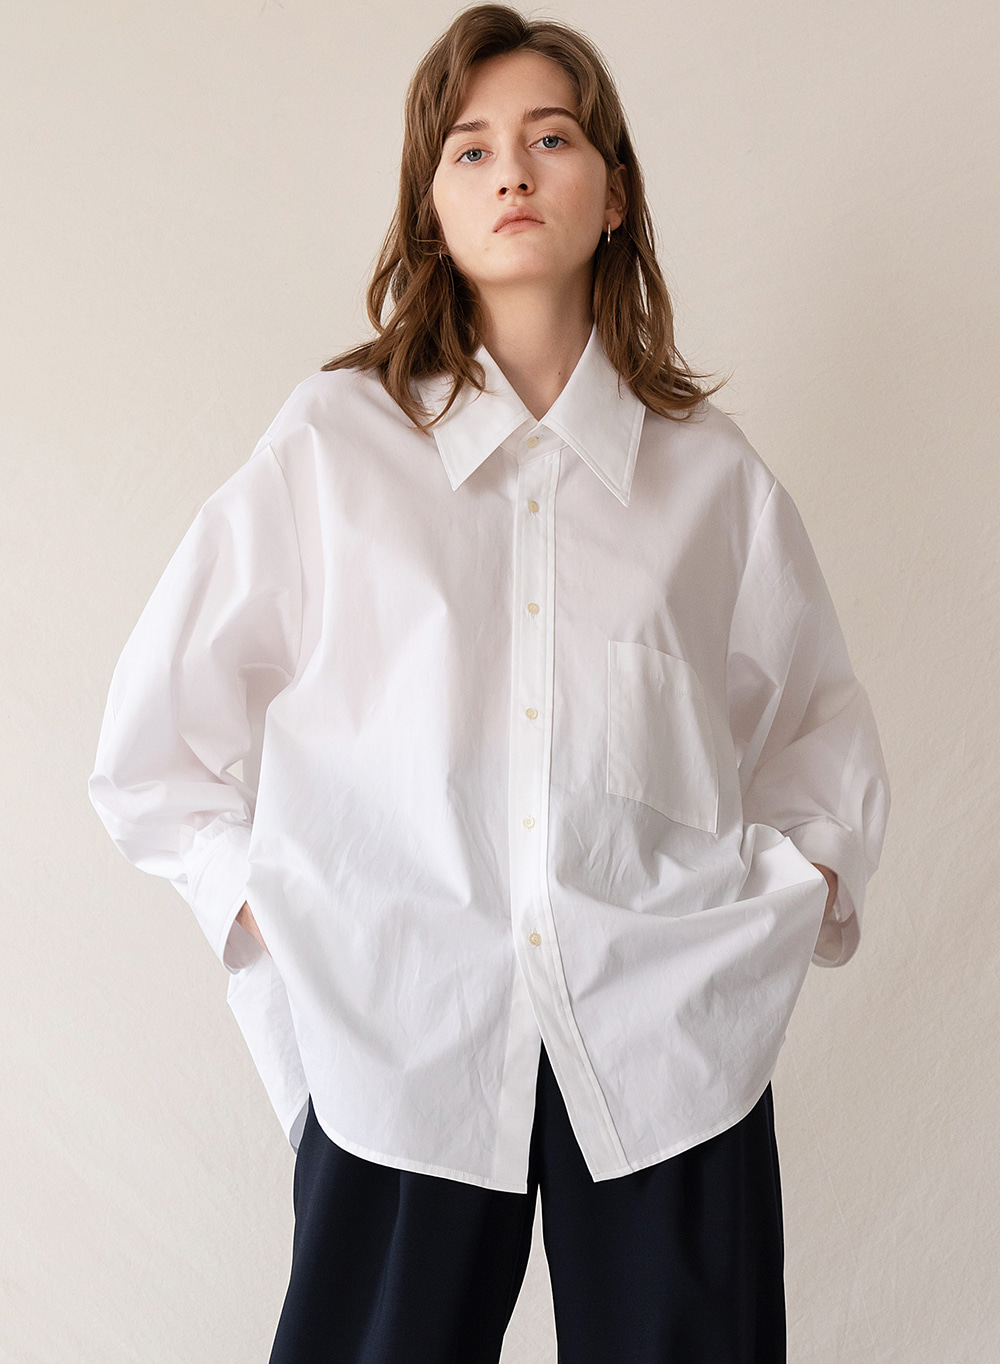 FW19 Oversized Deep Neck Shirt White